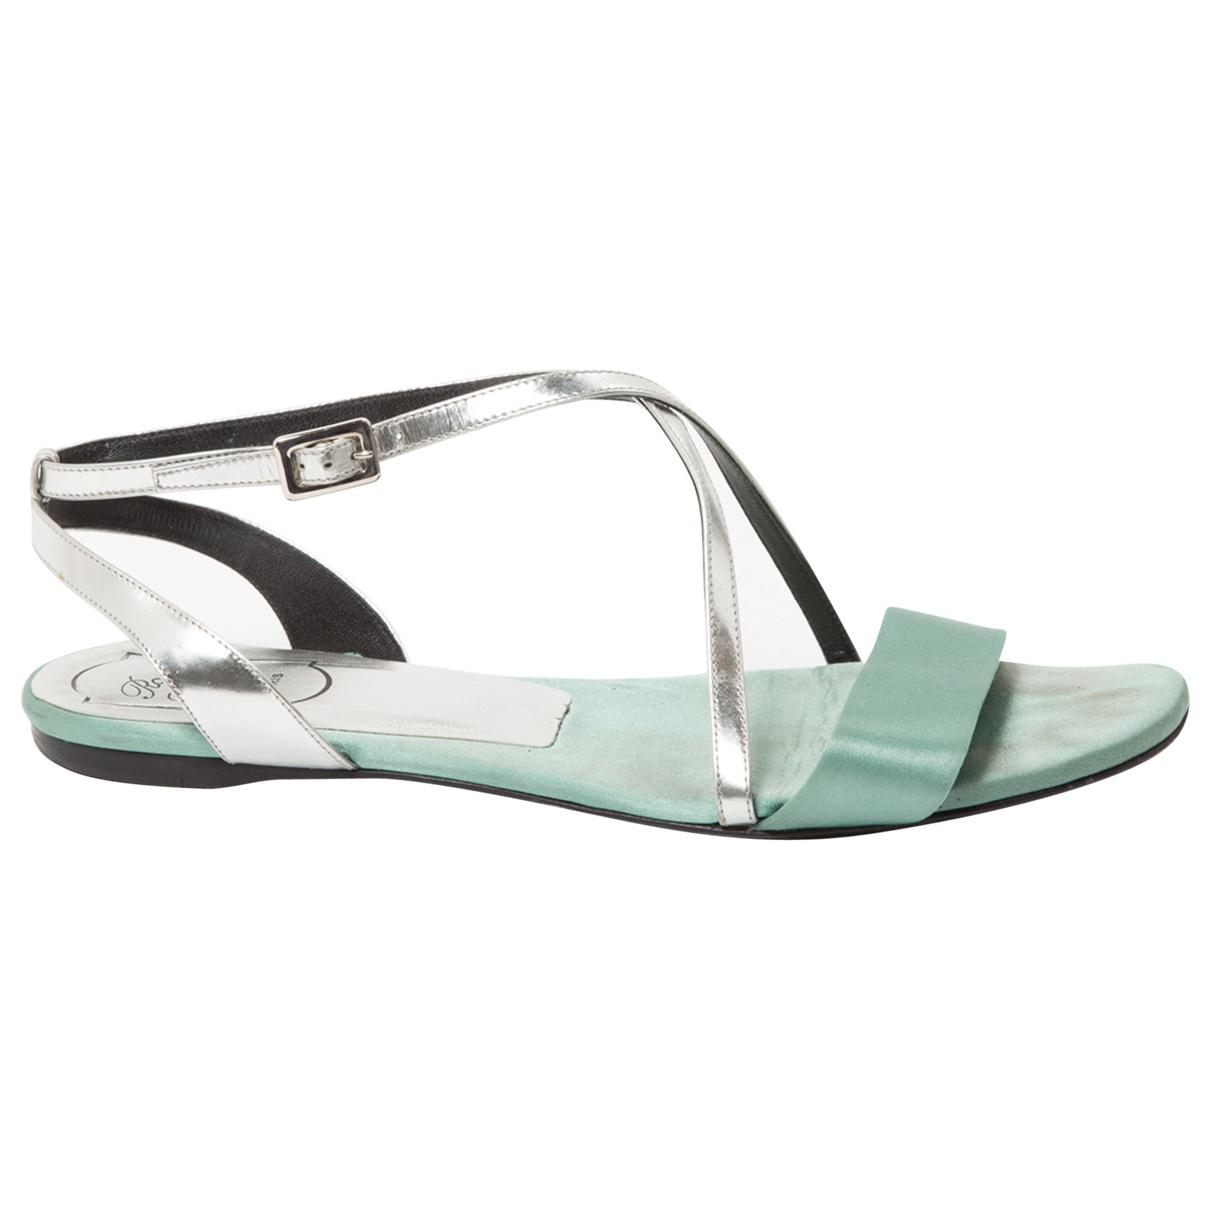 Pre-owned - Cloth sandals Roger Vivier RikN2tOas